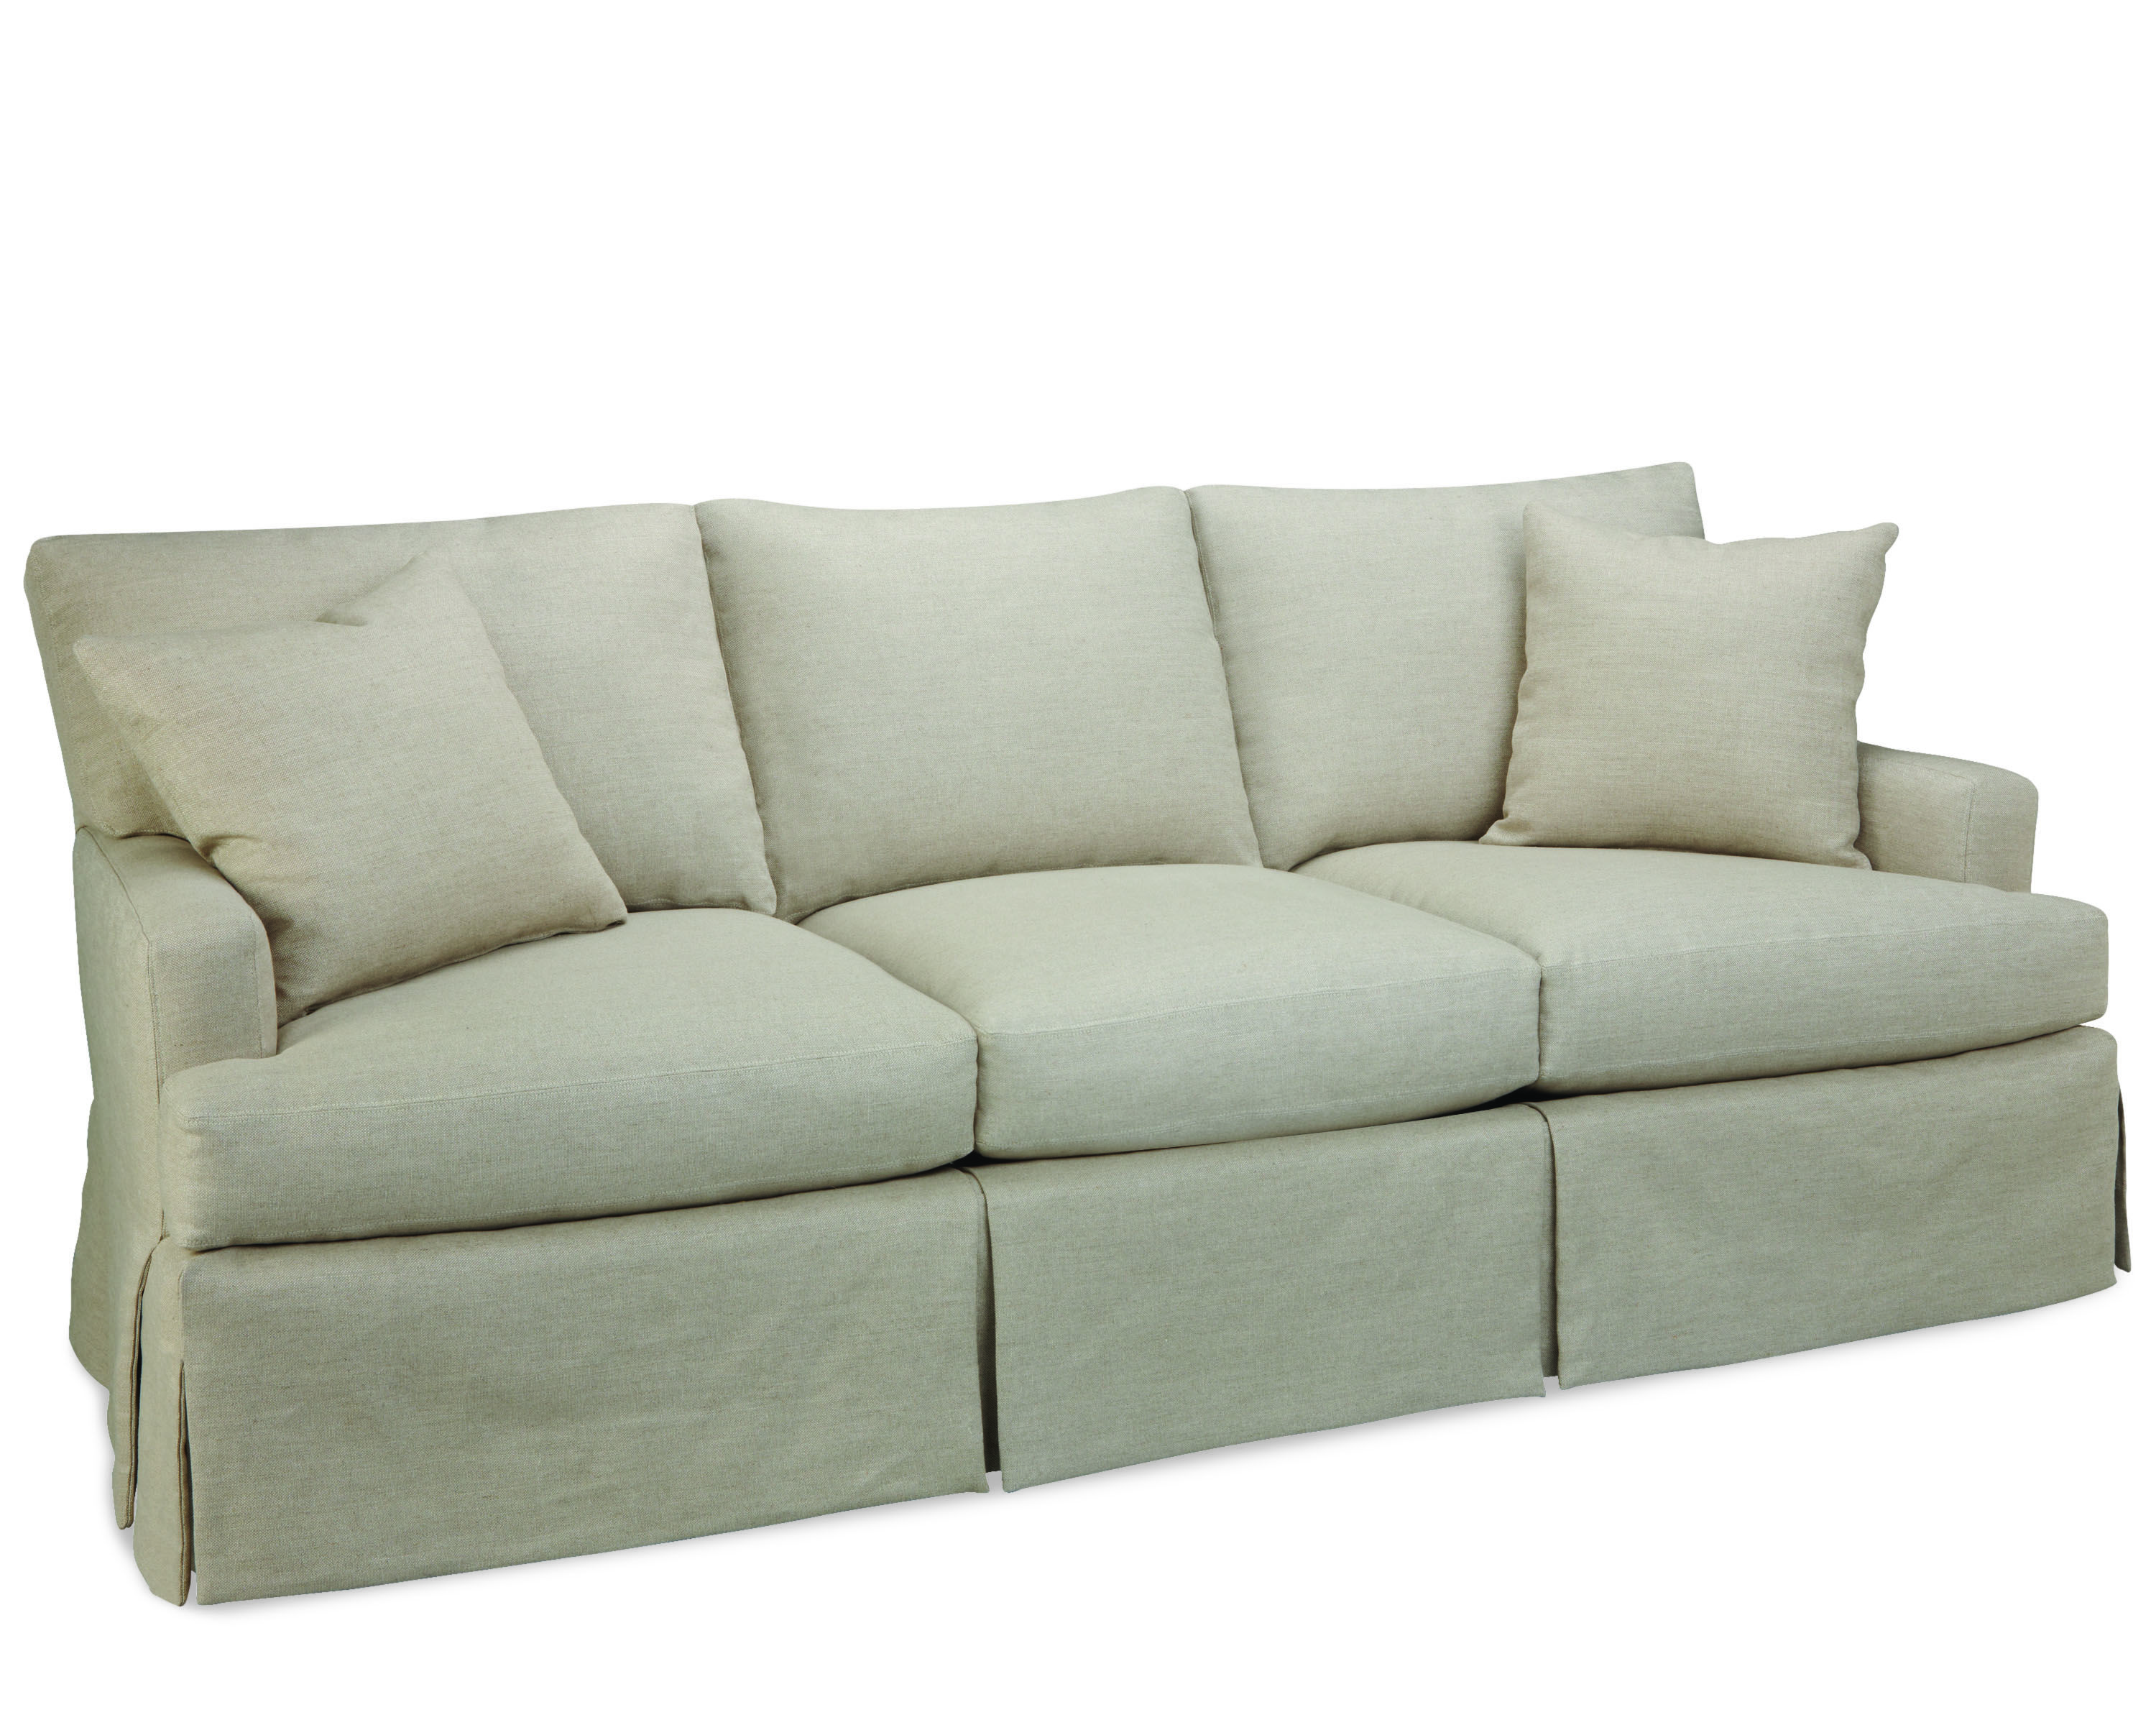 "Lee Industries sofa with turned leg tight back 3278 03 87"" long x"